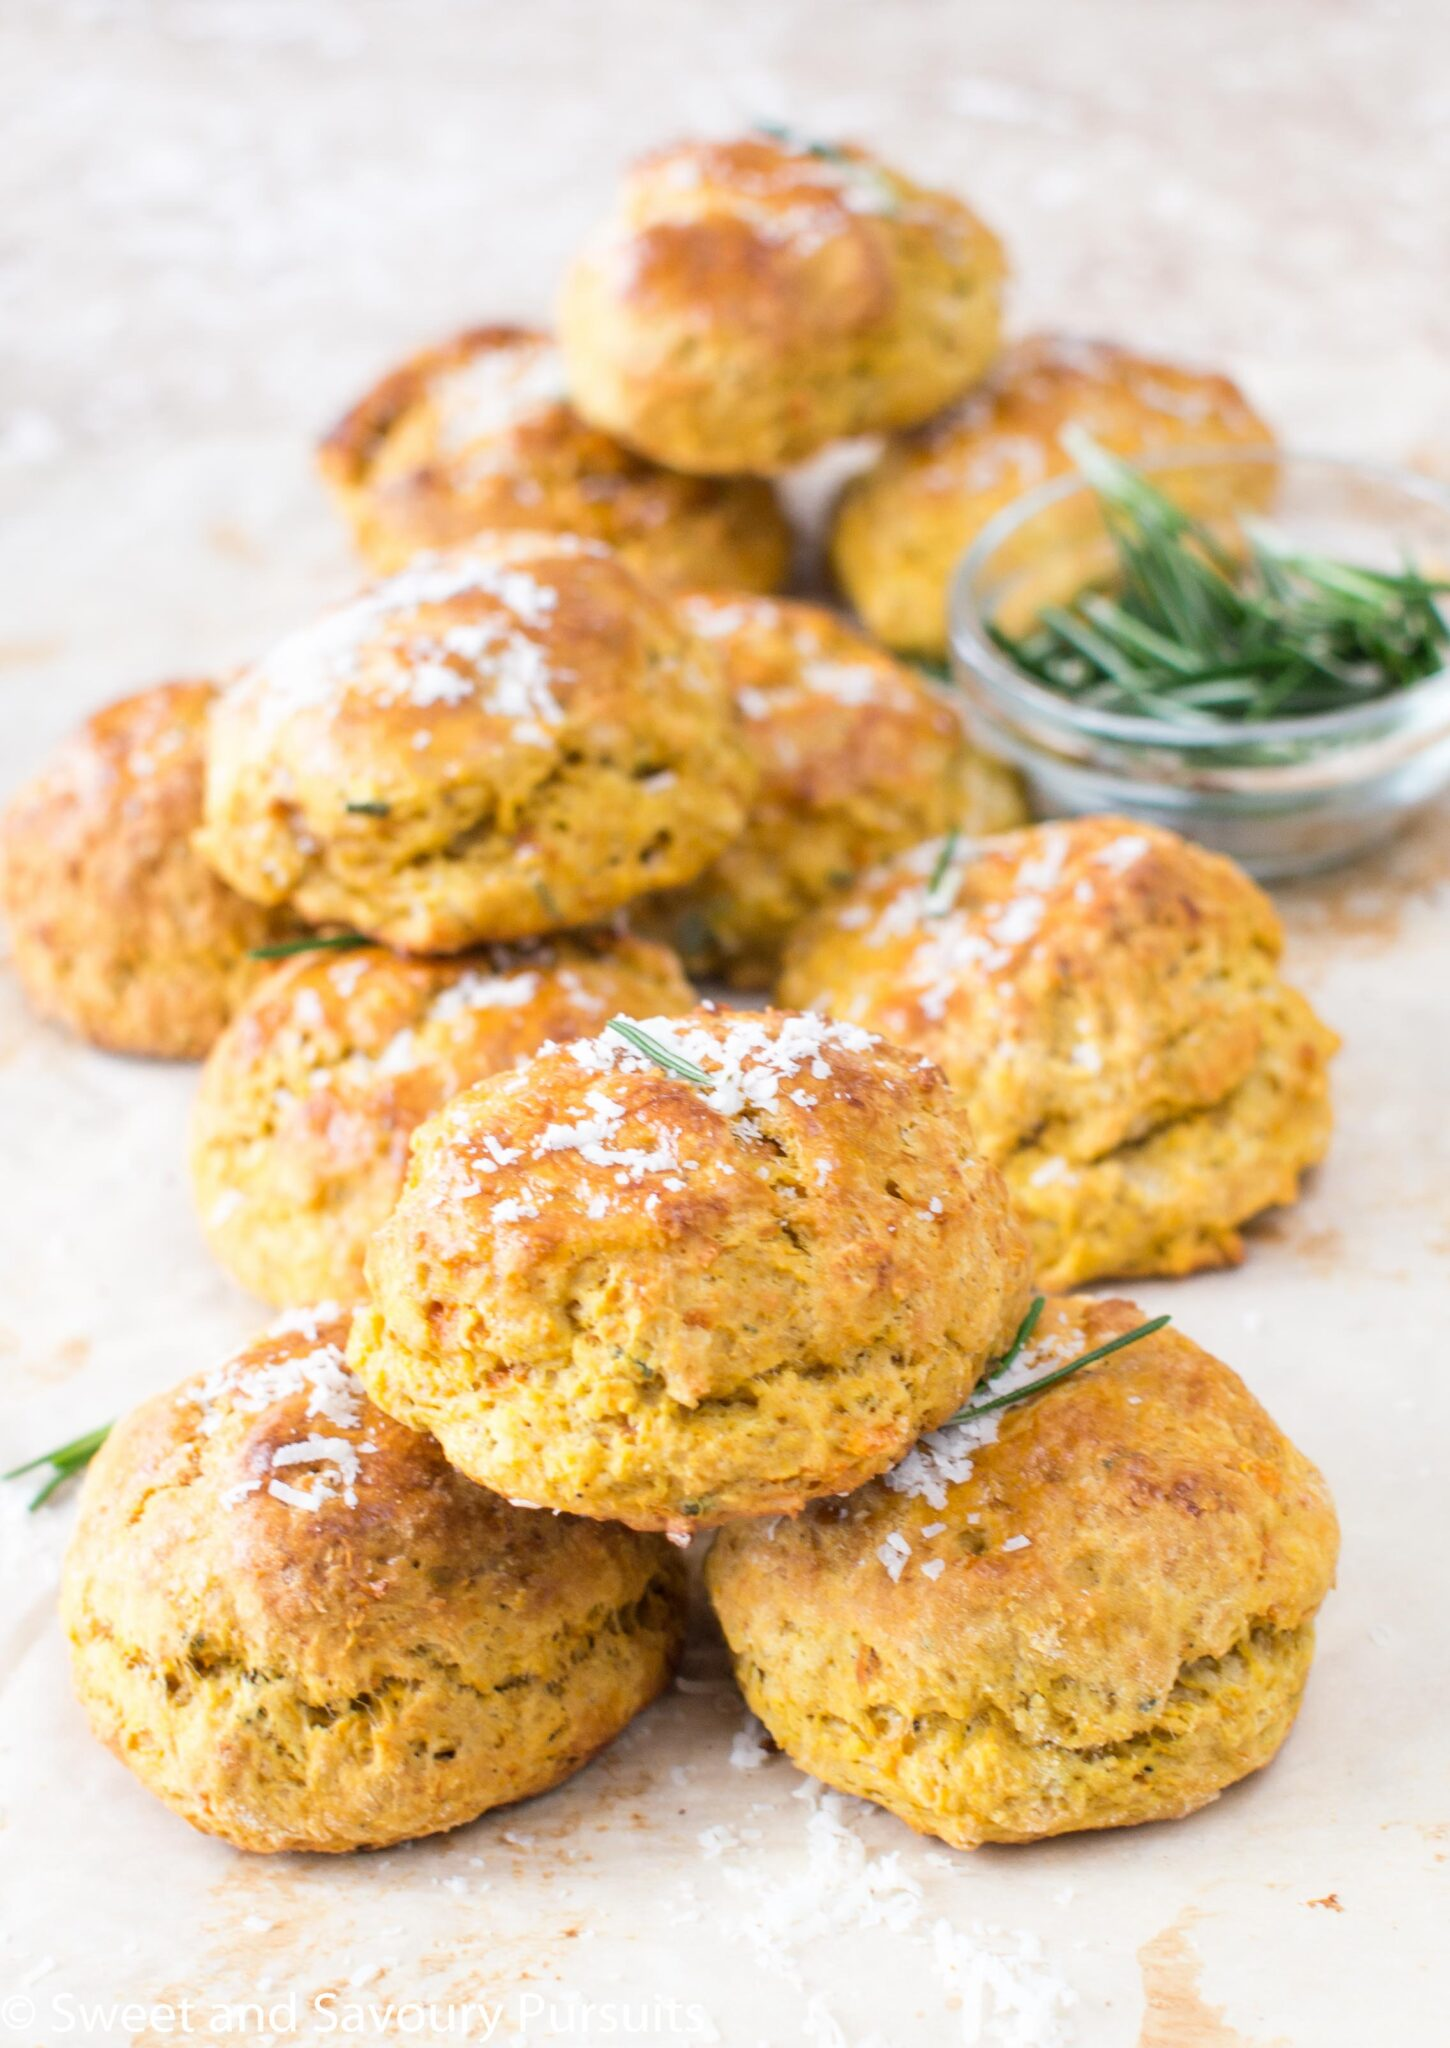 Freshly baked Sweet Potato, Parmesan and Rosemary Biscuits.